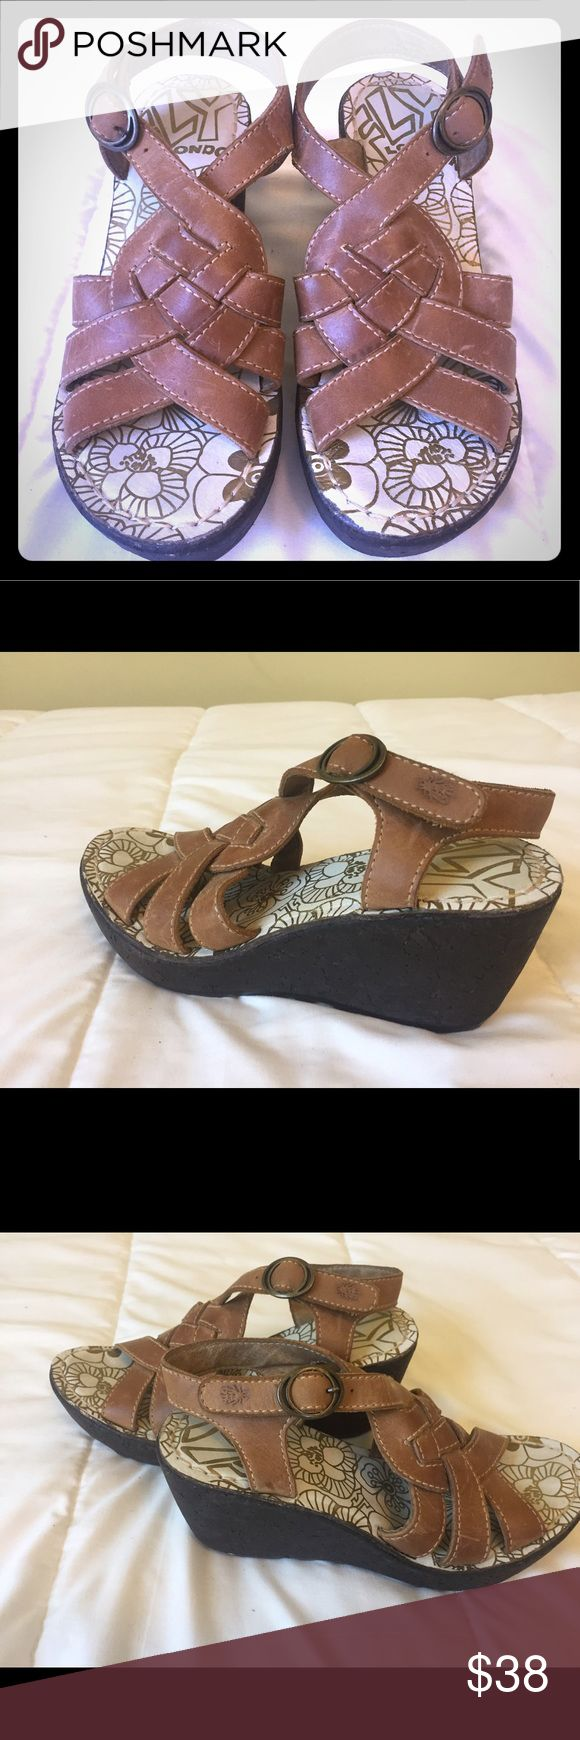 """Fly London Wedge Sandals! Fly London Wedge Sandals with medium brown leather and rubber soles. Fun, summery shoes that are great with skirts and pants. The Wedge heal measures 3"""". Cushioned insole makes them super comfy.  Gently worn. Fly London Shoes Wedges"""